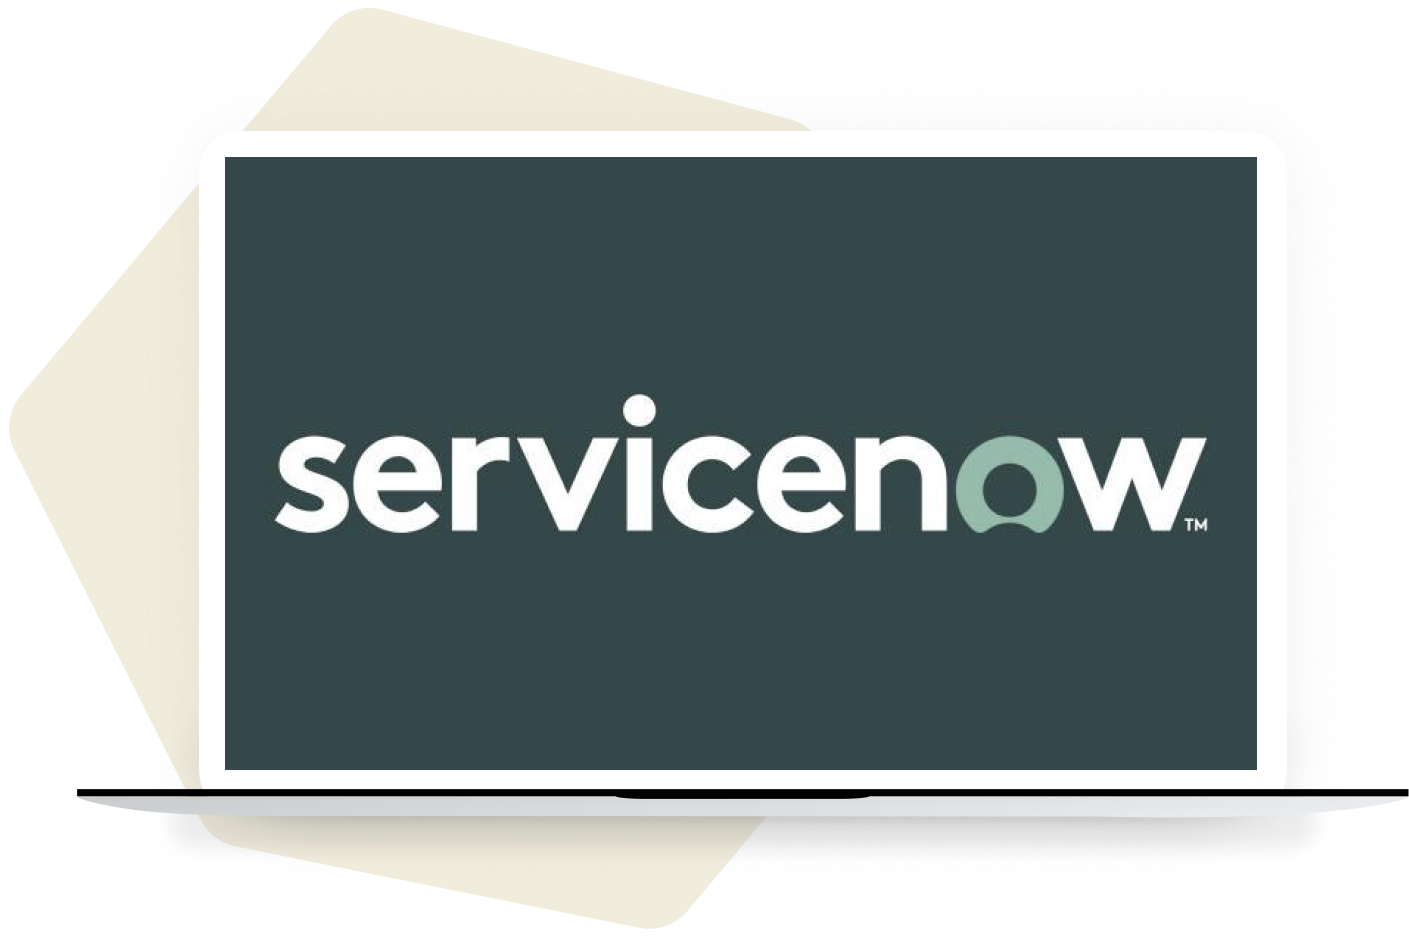 ServiceNow recruiting firm